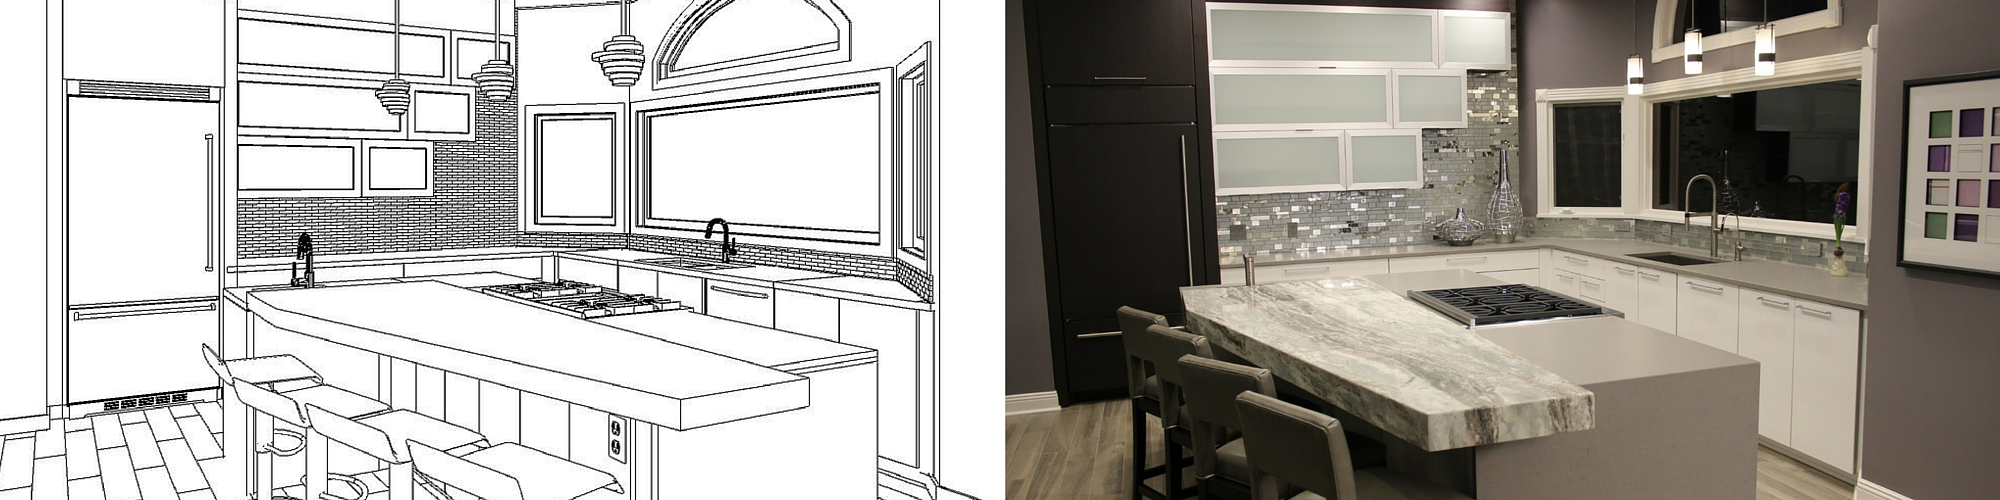 design and remodeling services